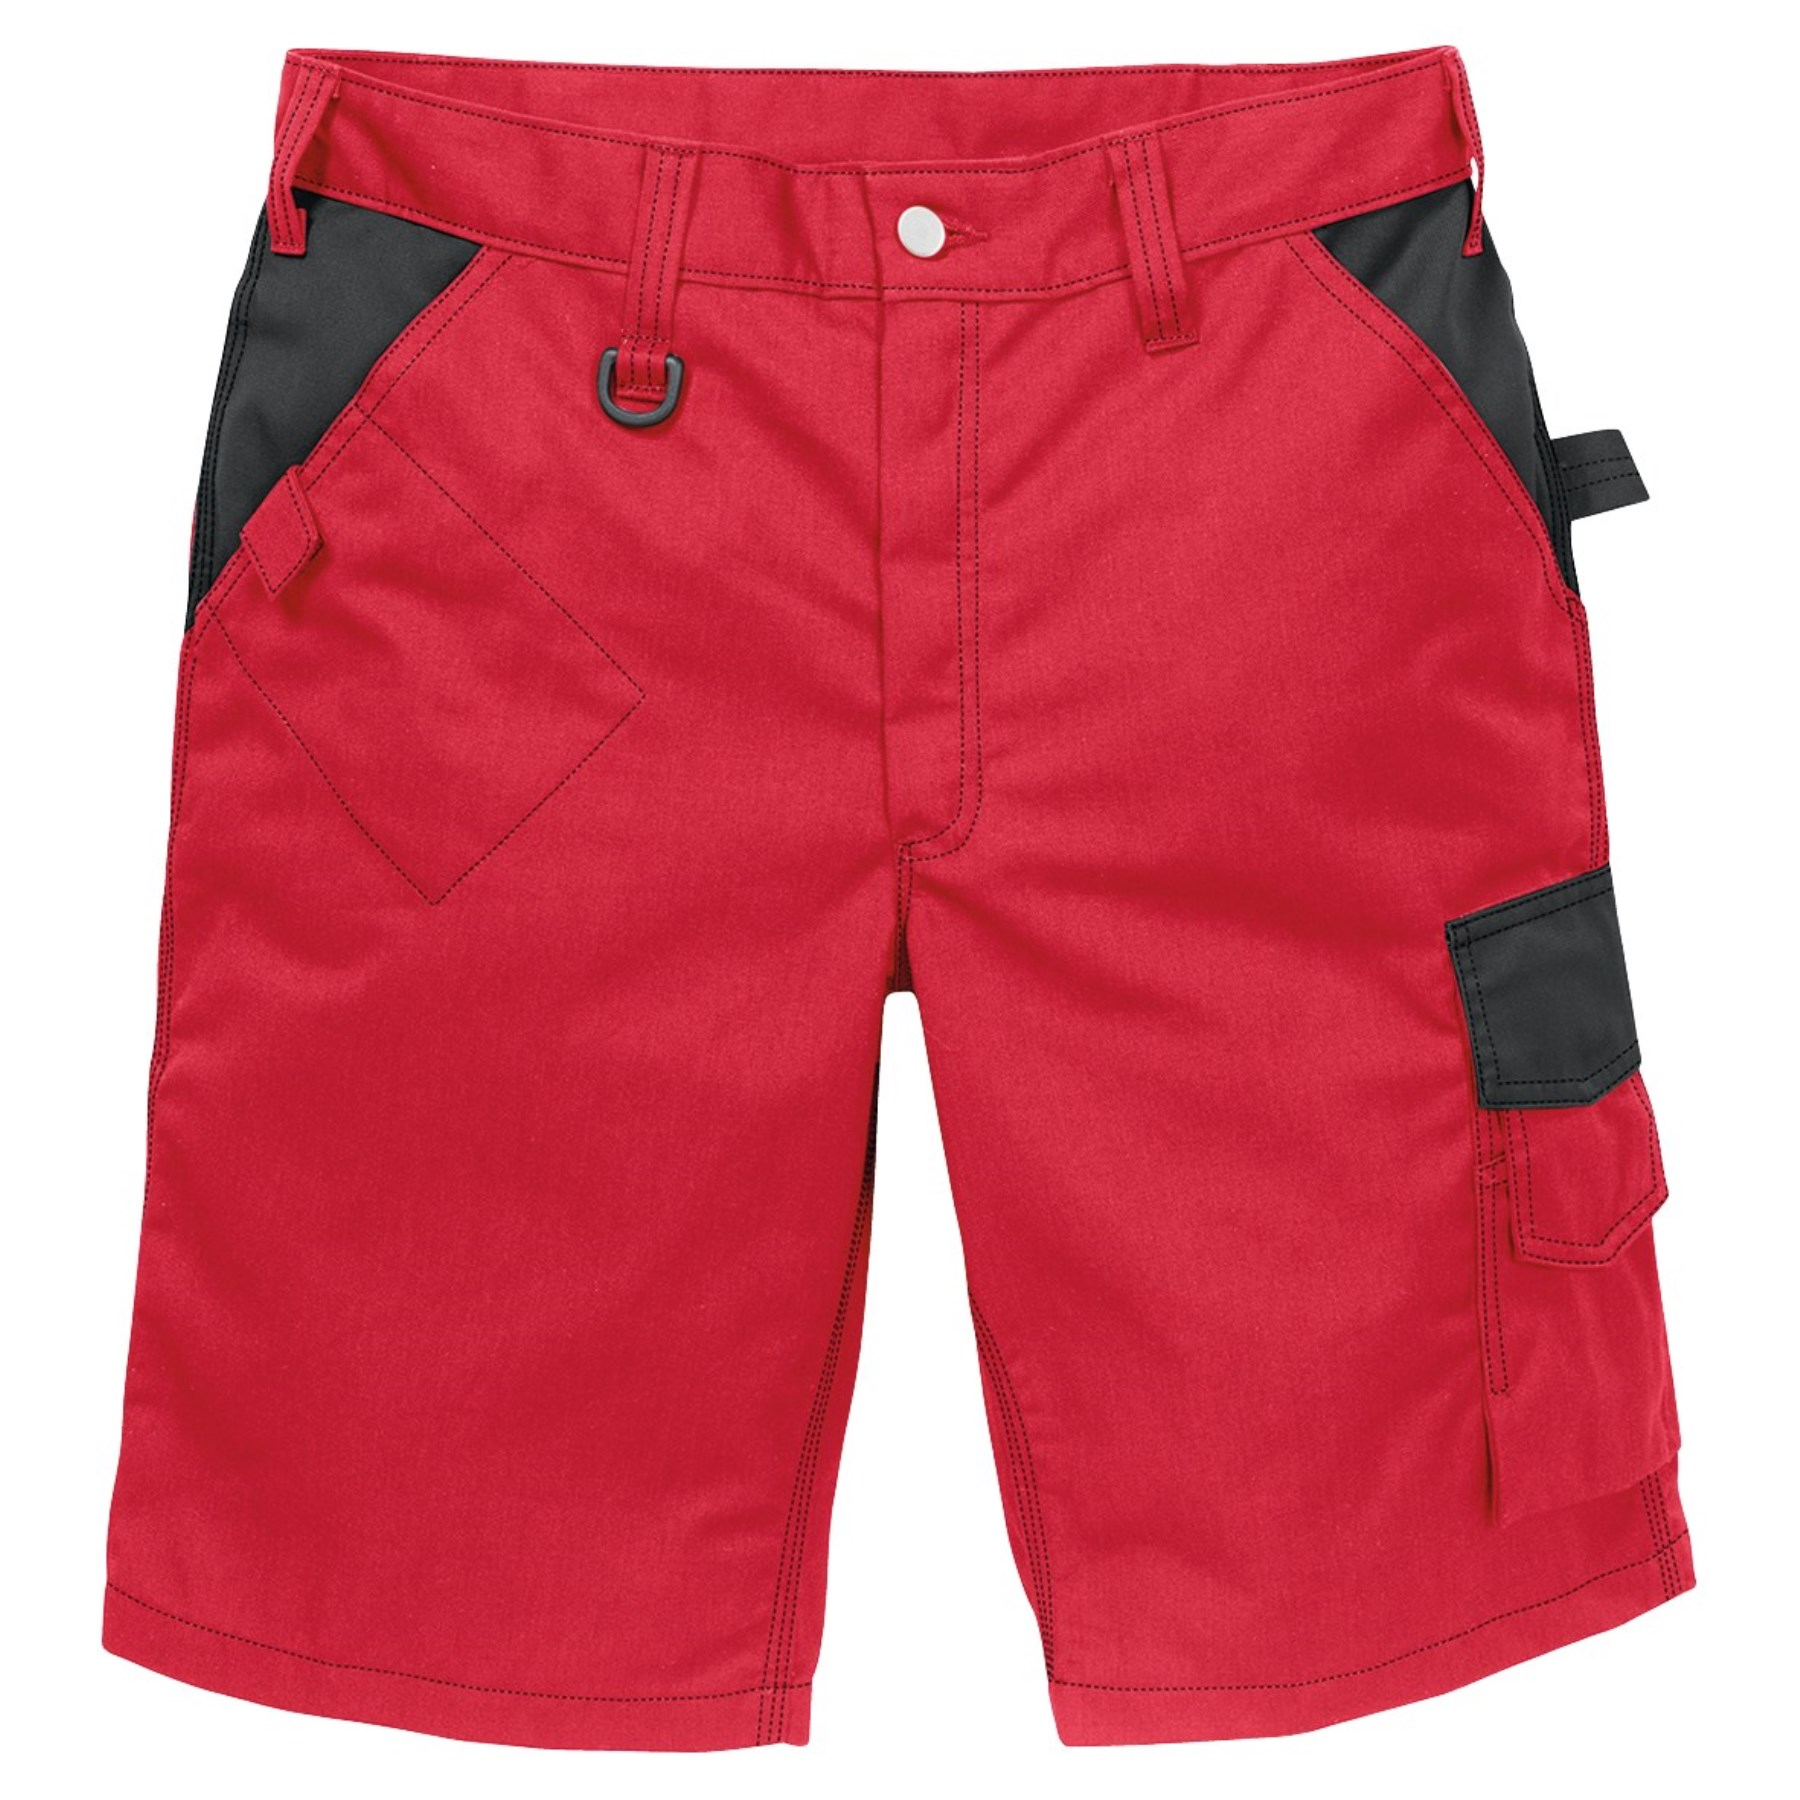 1223475 - Shorts Icon Cool 114105